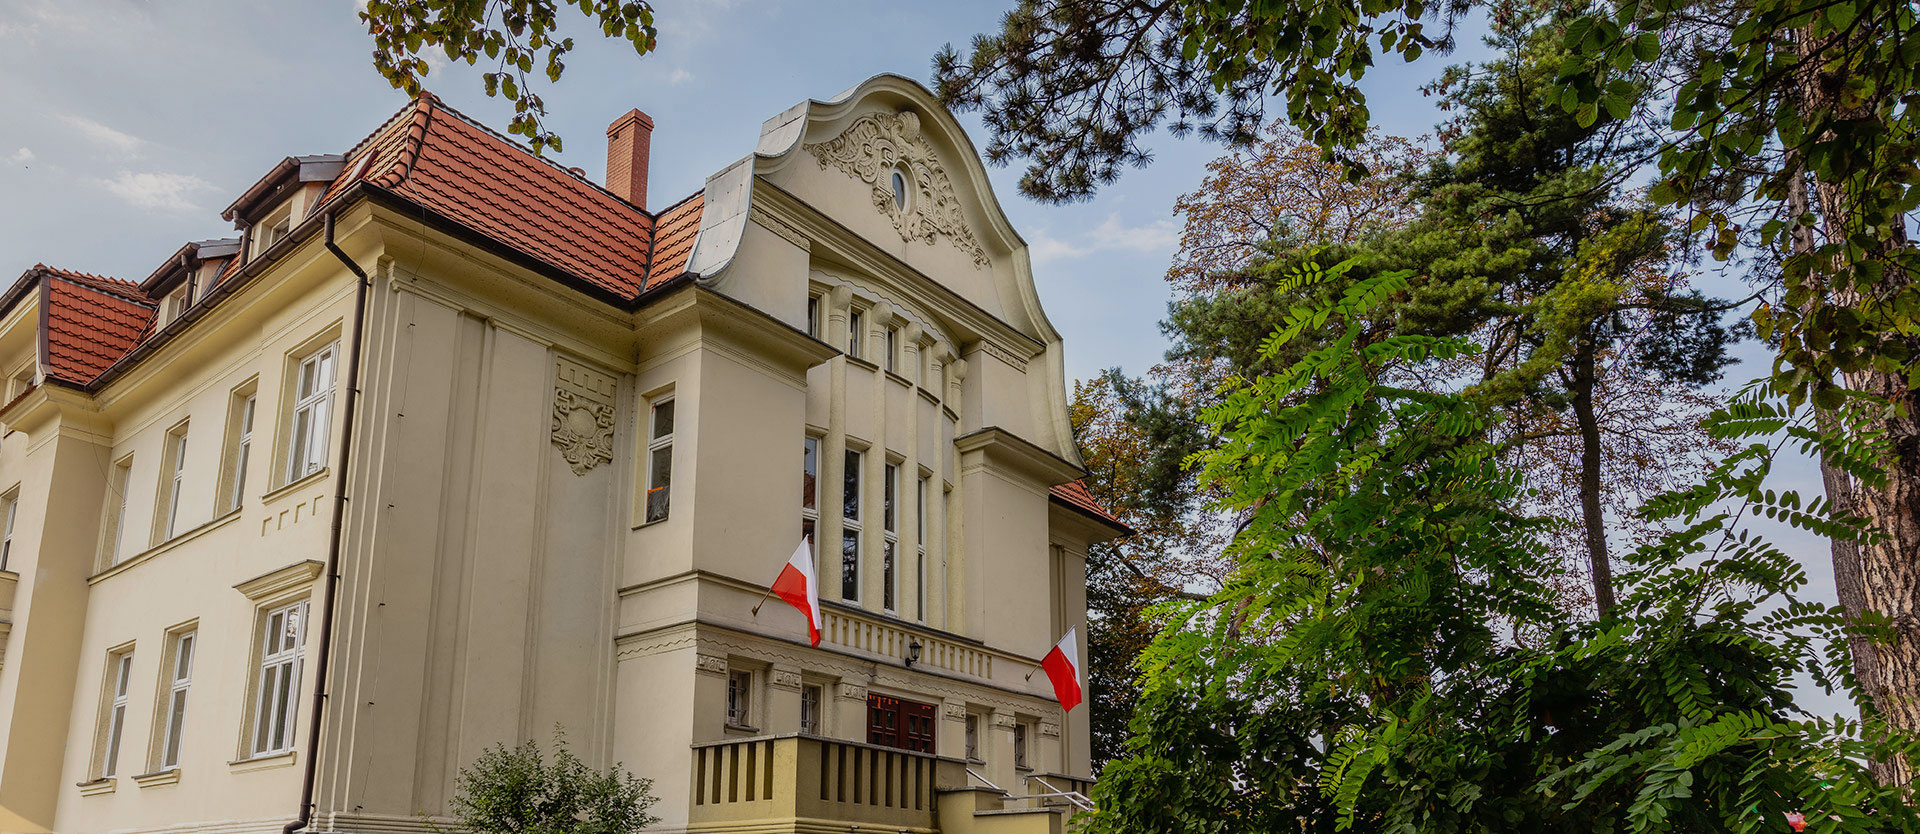 The library in Raciborz